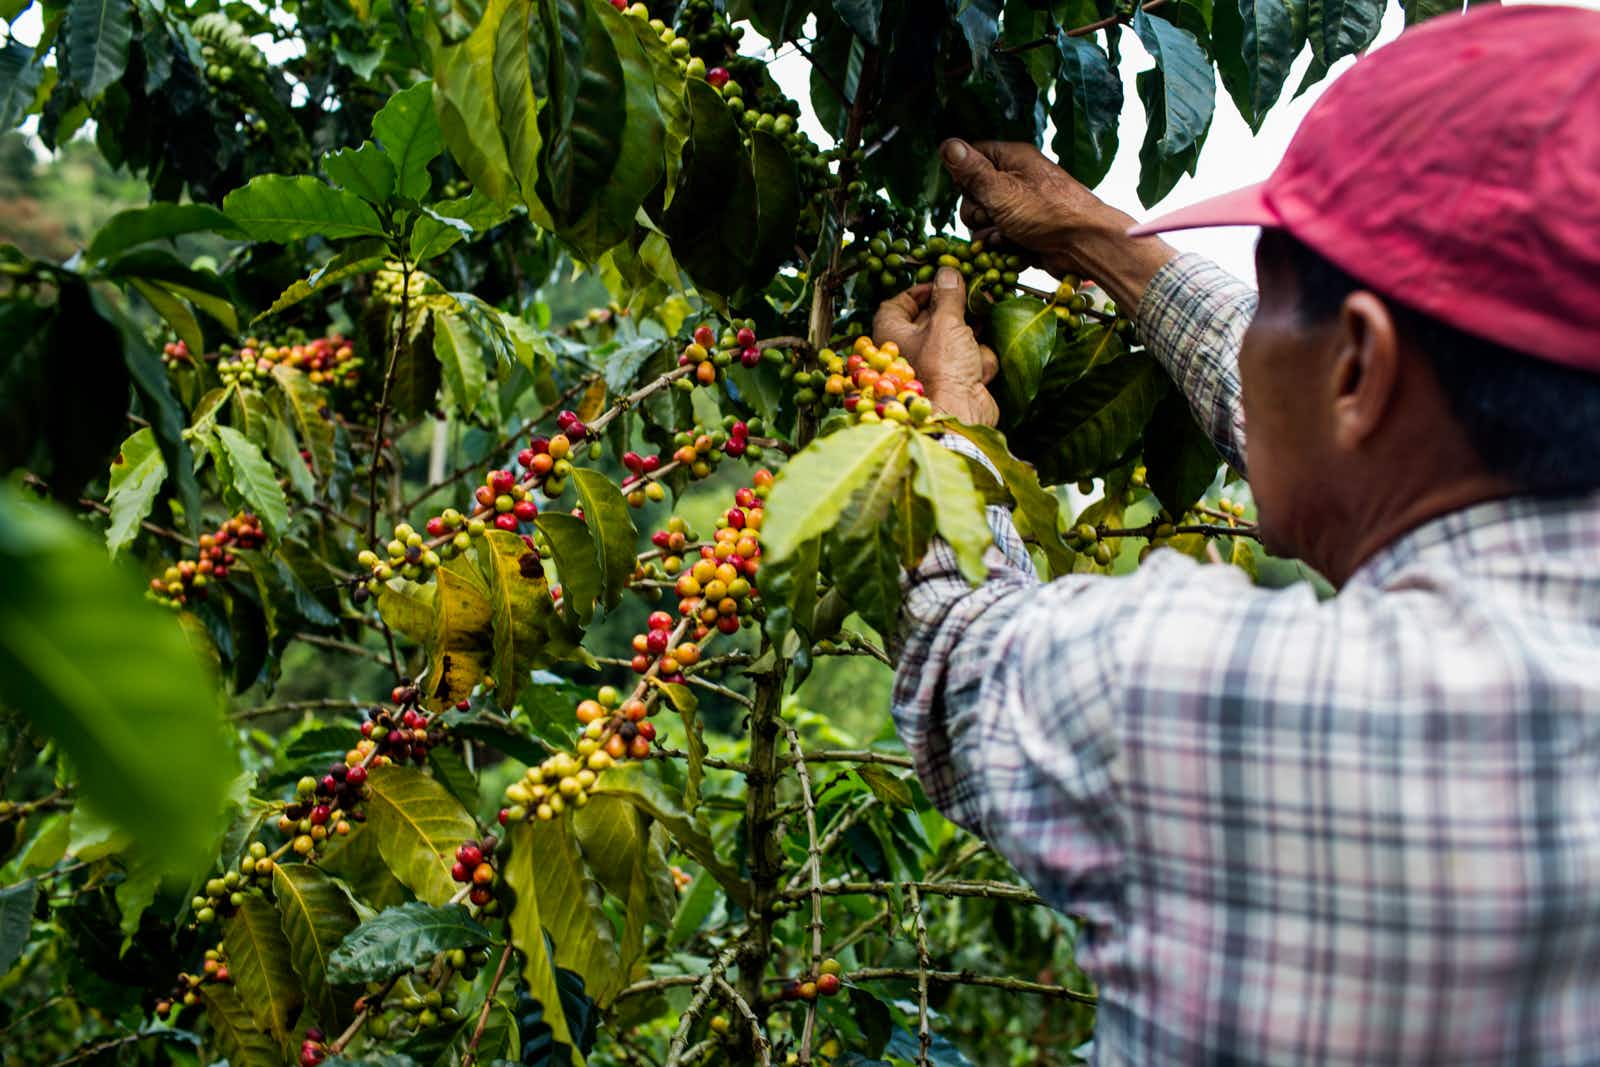 A man picks cherries at a farm in the rural highlands of Colombia's Coffee Triangle © Modoc Stories / Getty Images